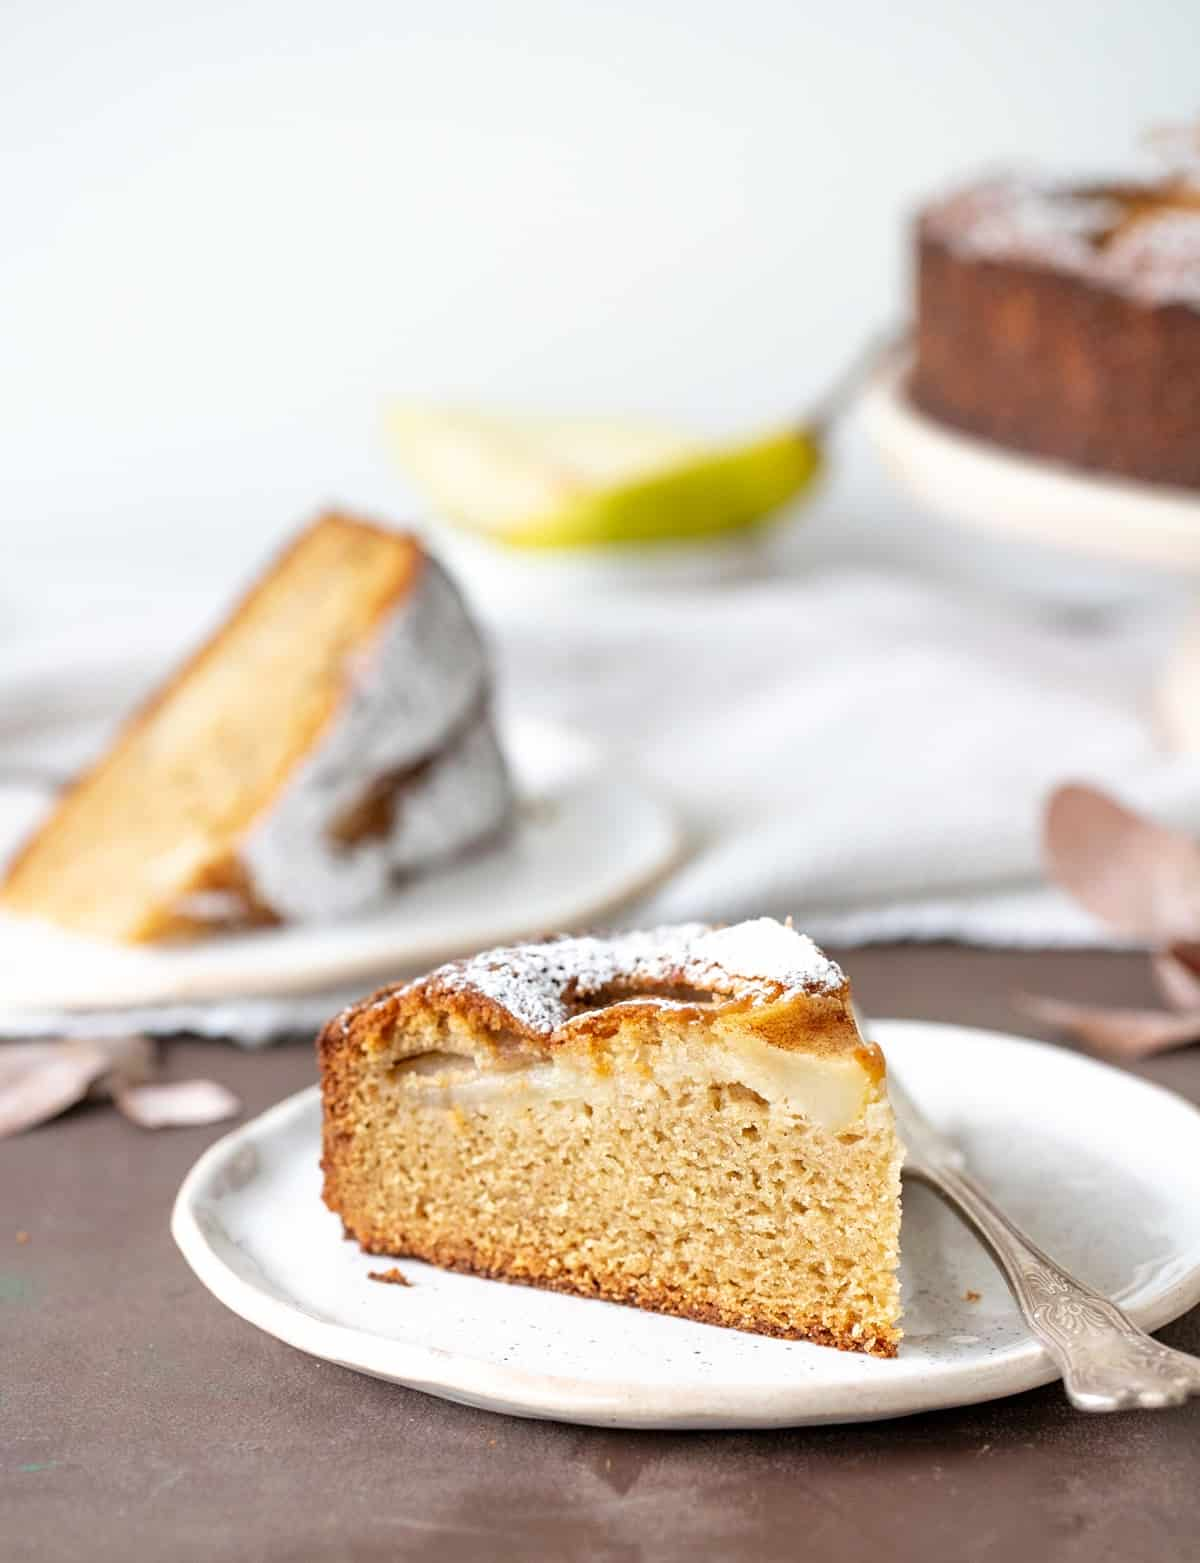 Slices of pear cake on white plates, brown surface, white background